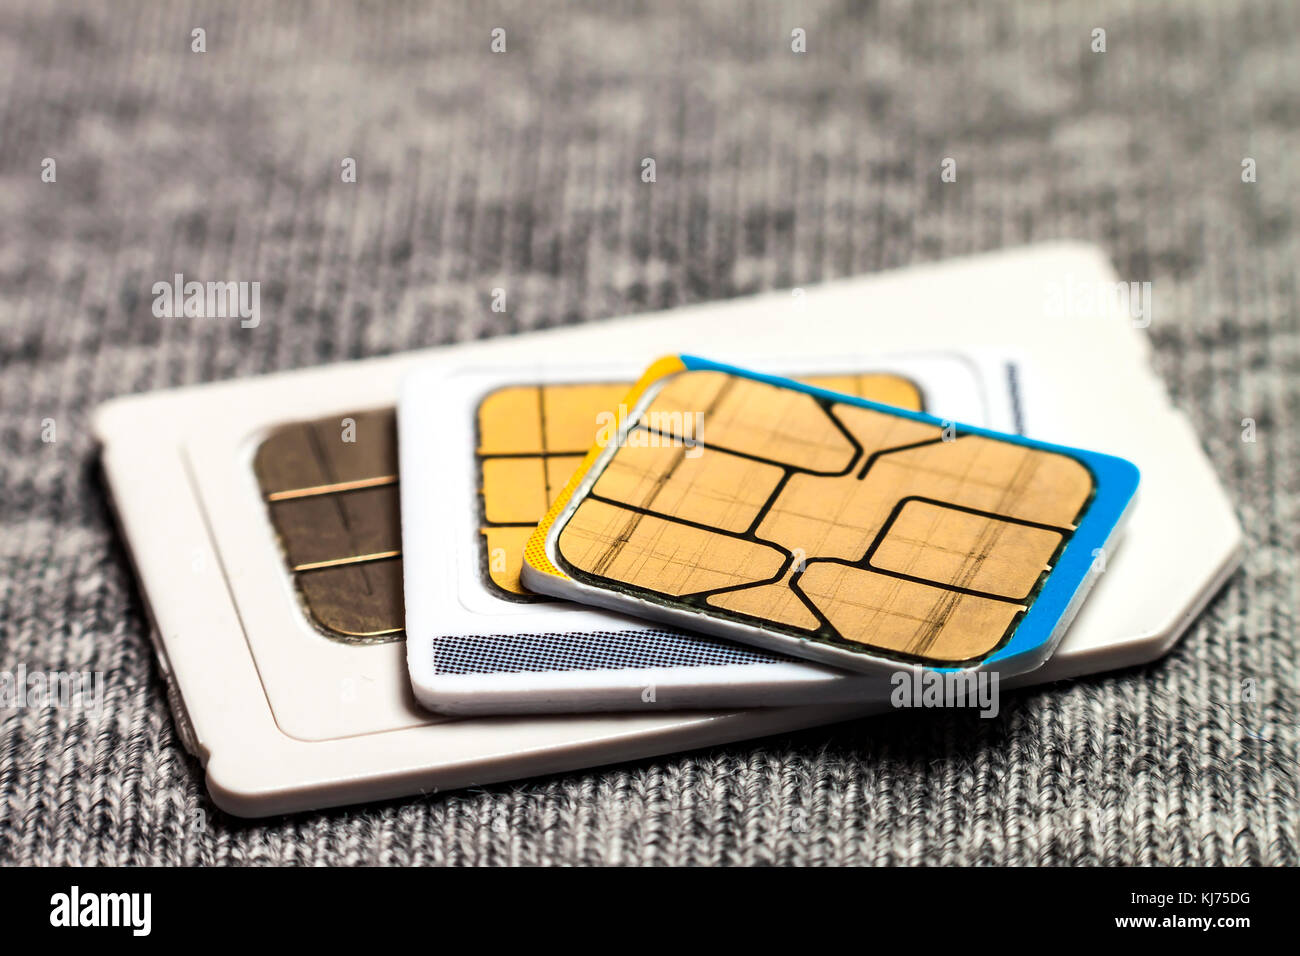 how to set up iphone no sim card